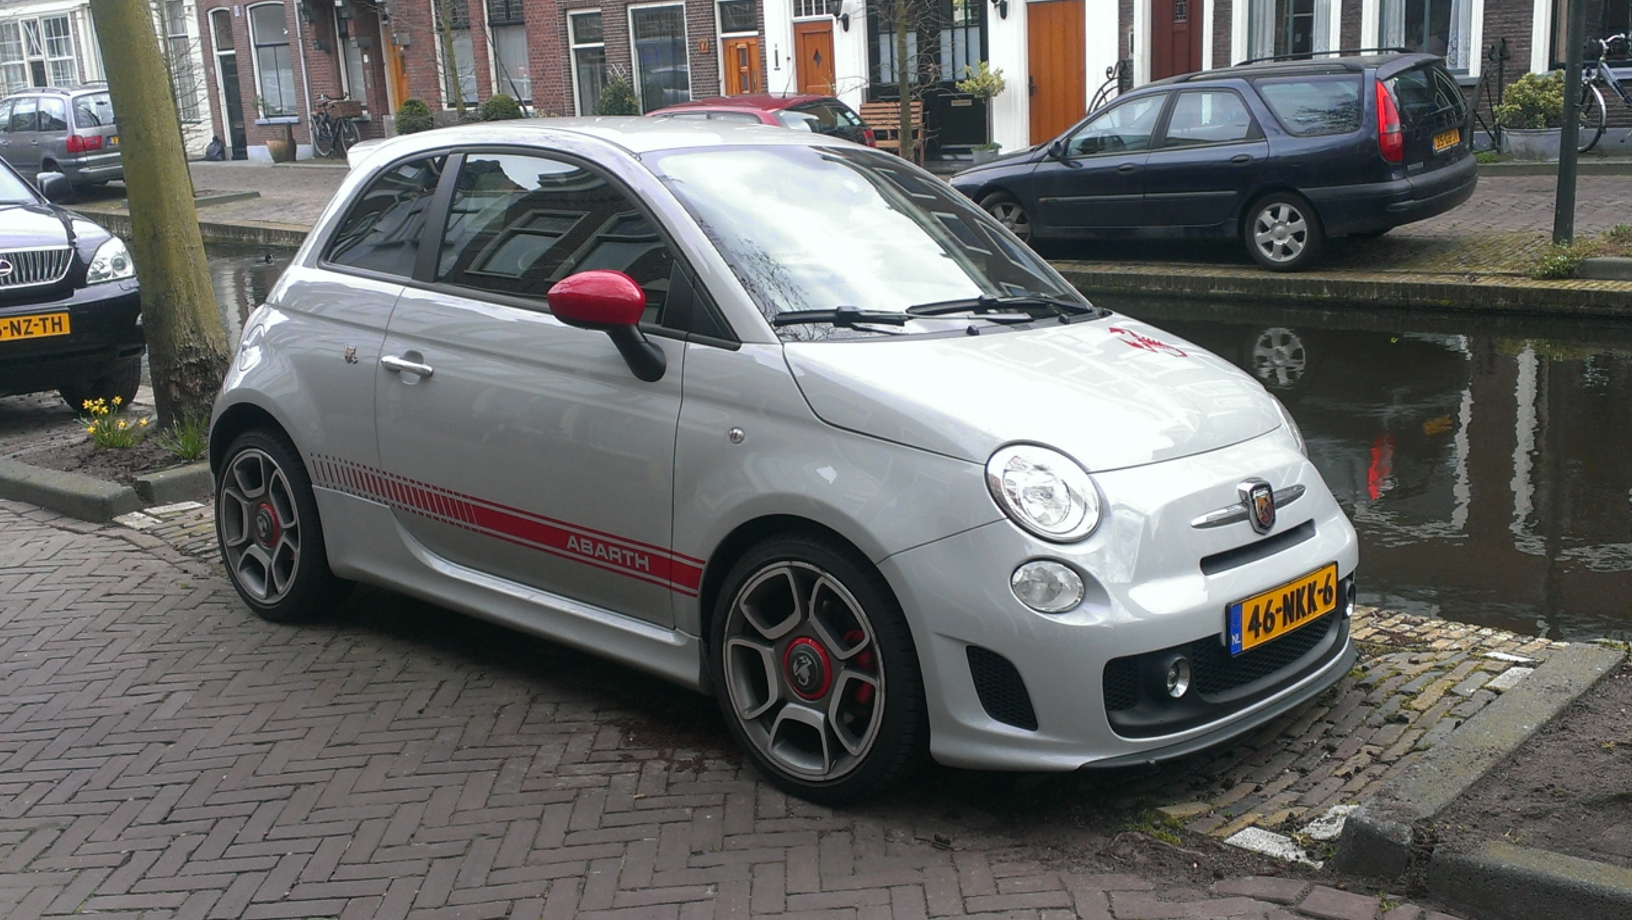 File:2010 Abarth 500 front.jpg - Wikimedia Commons